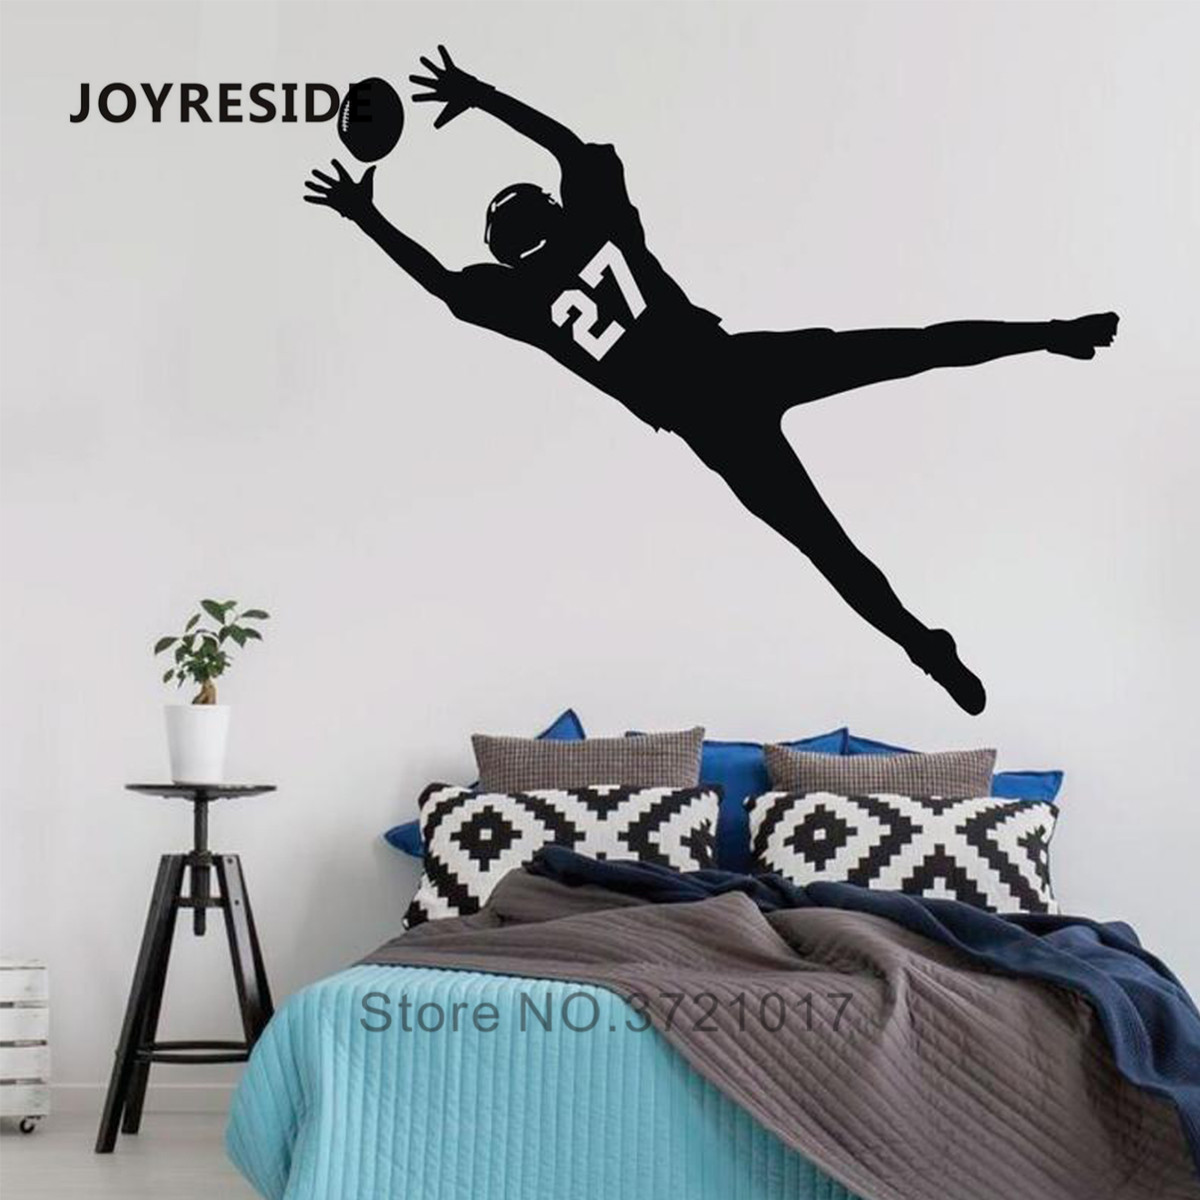 JOYRESIDE Custom Number Boys Soccer Wall Decal Home Kids Boy Bedroom Wall Decor Football Catching Player Wall Decals Vinyl WM352 image